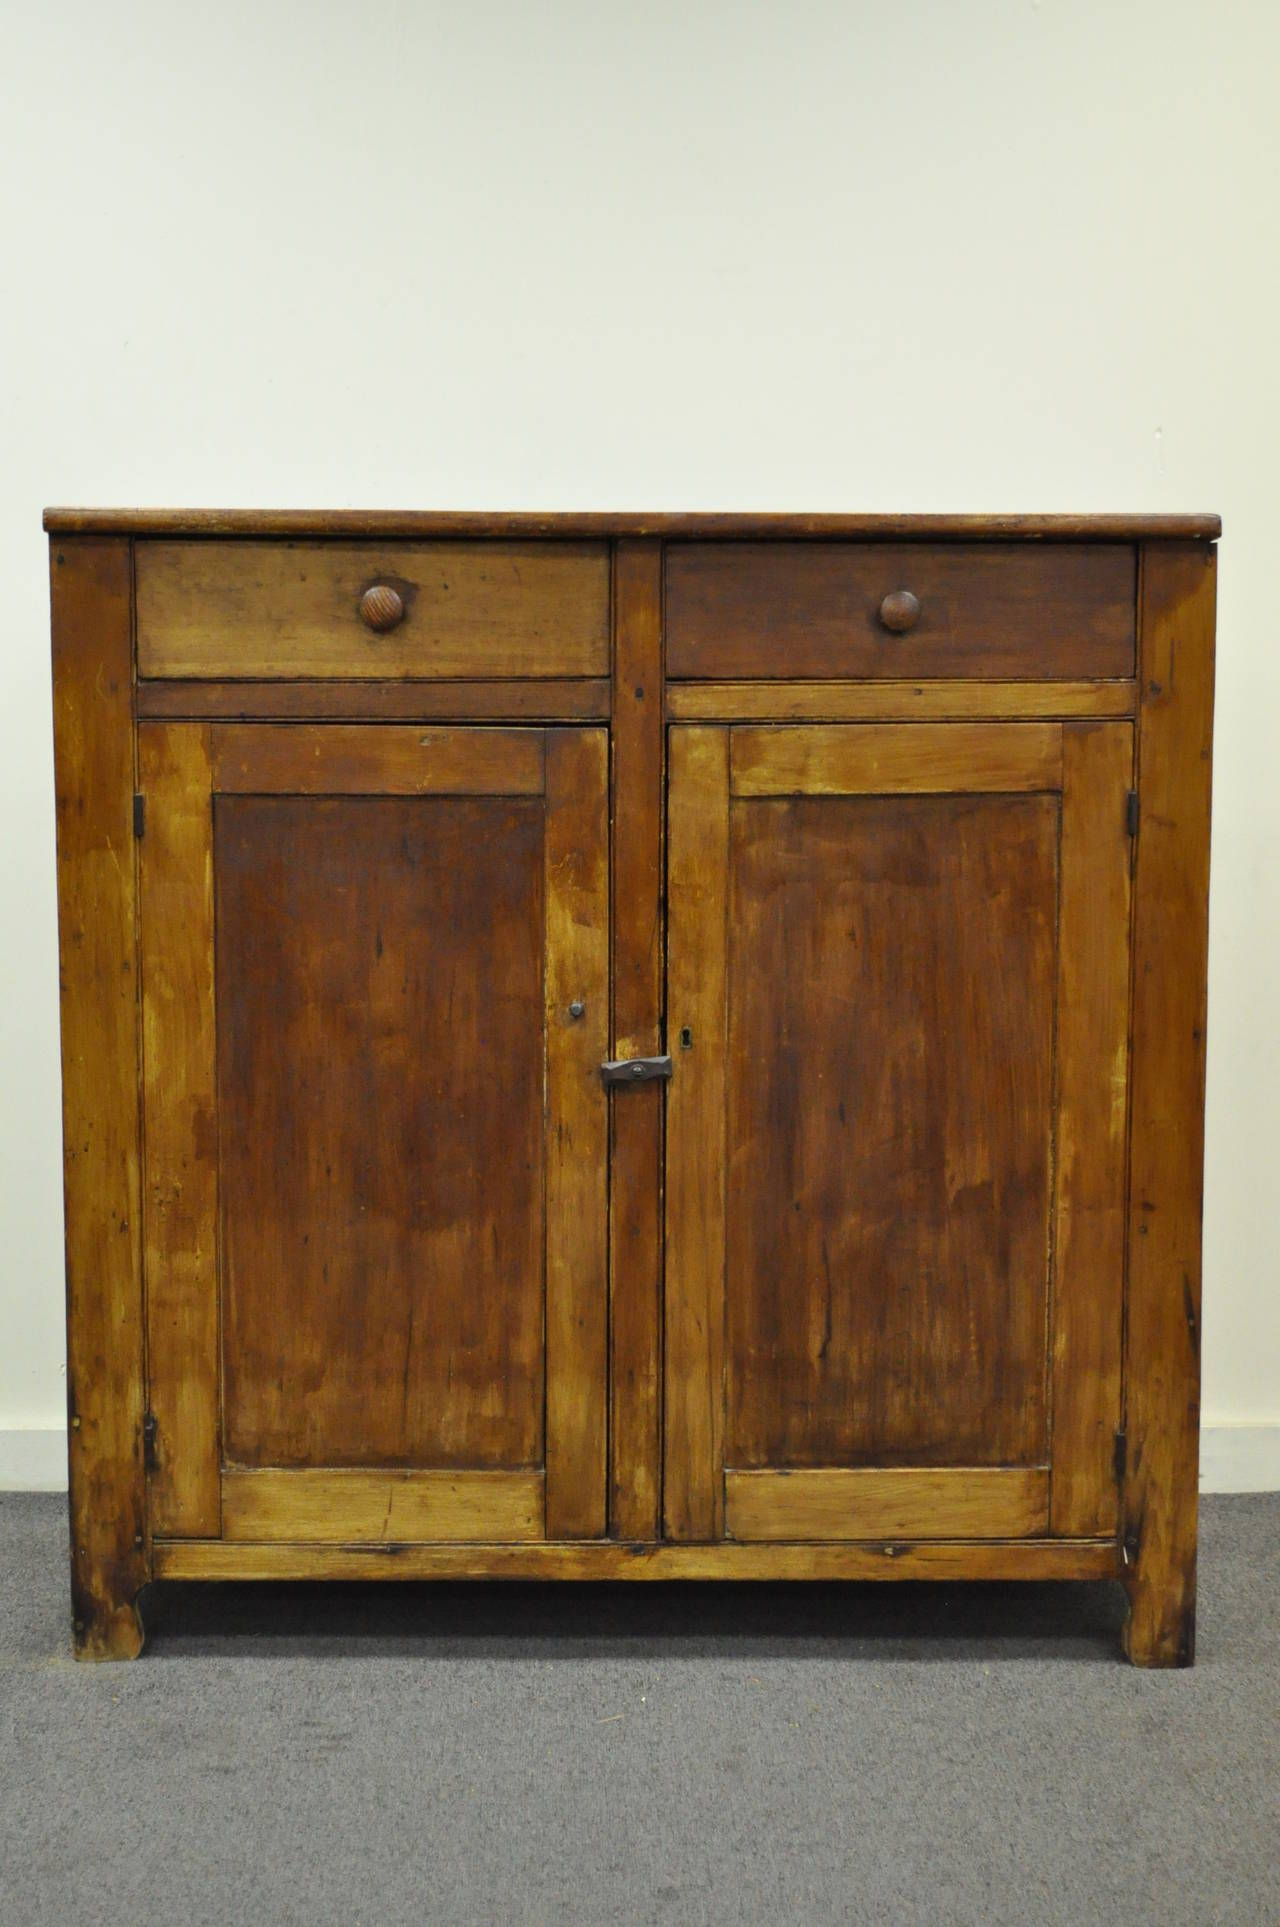 Primitive Rustic Pine Hand Dovetail Joined Jelly Cupboard Pantry Kitchen Cabinet Kitchen Cabinets For Sale Master Bedroom Furniture Farmhouse Decor Living Room